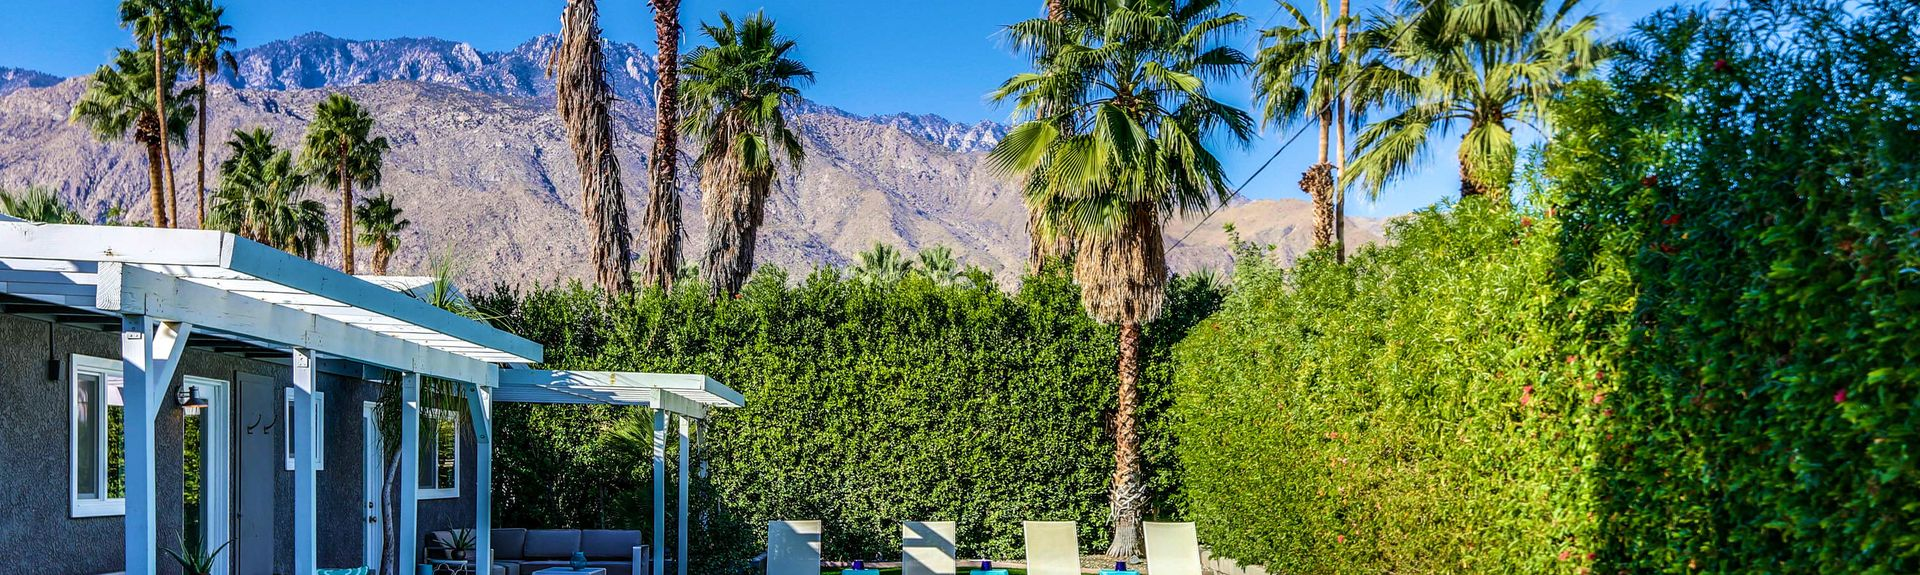 Sunmor, Palm Springs, California, United States of America